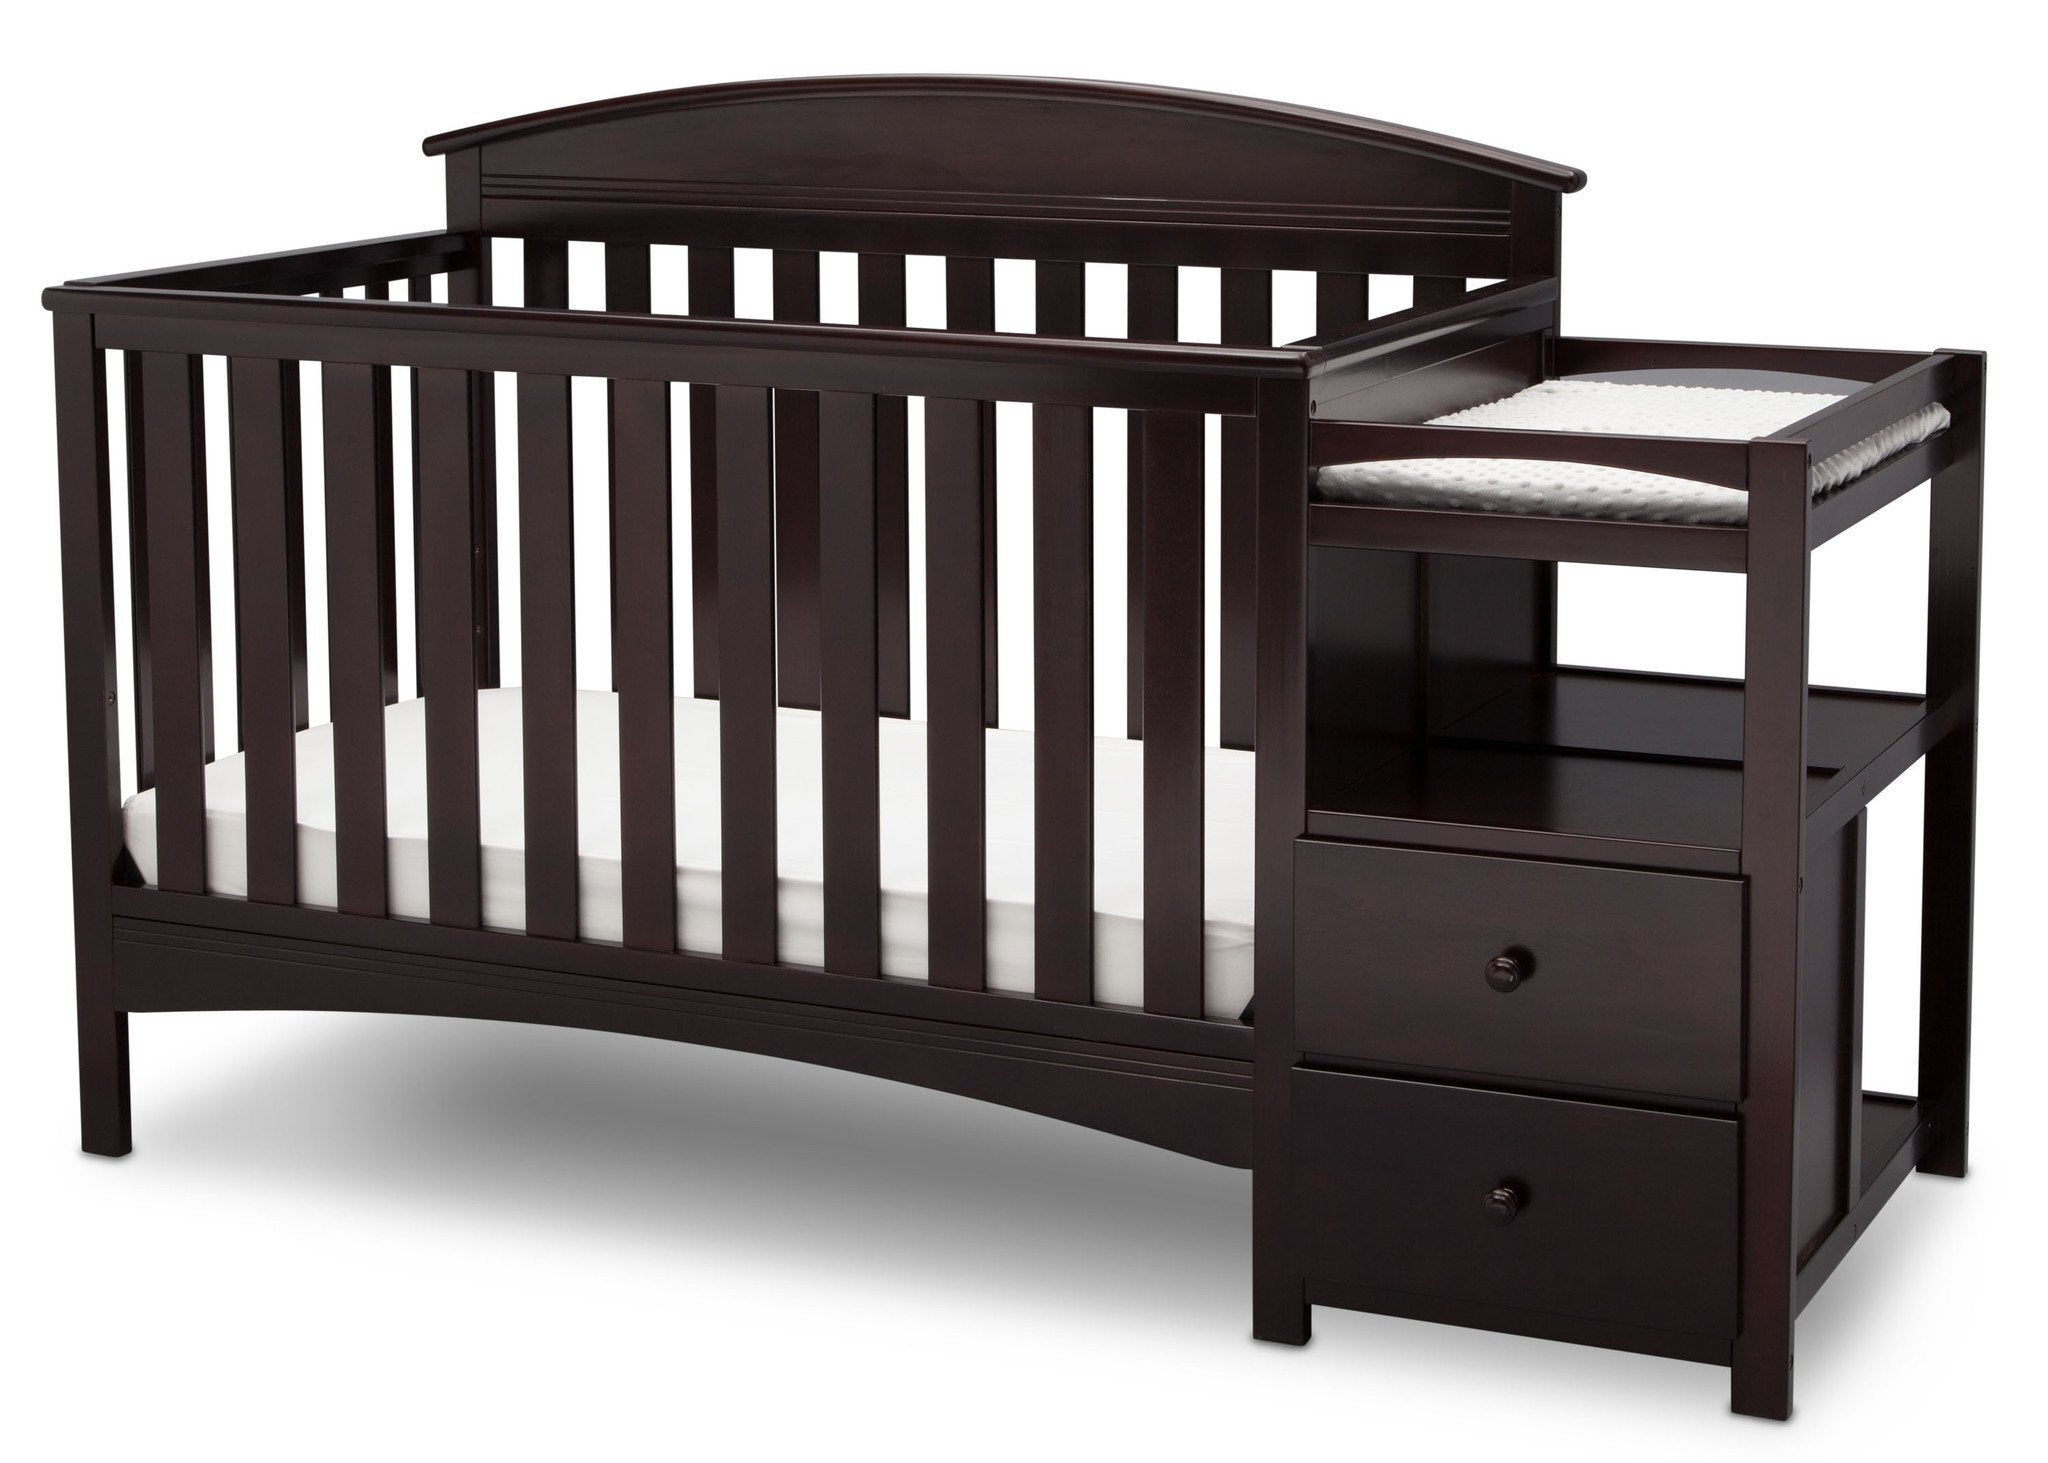 Delta Children Dark Chocolate (207) Abby Crib N Changer c3c